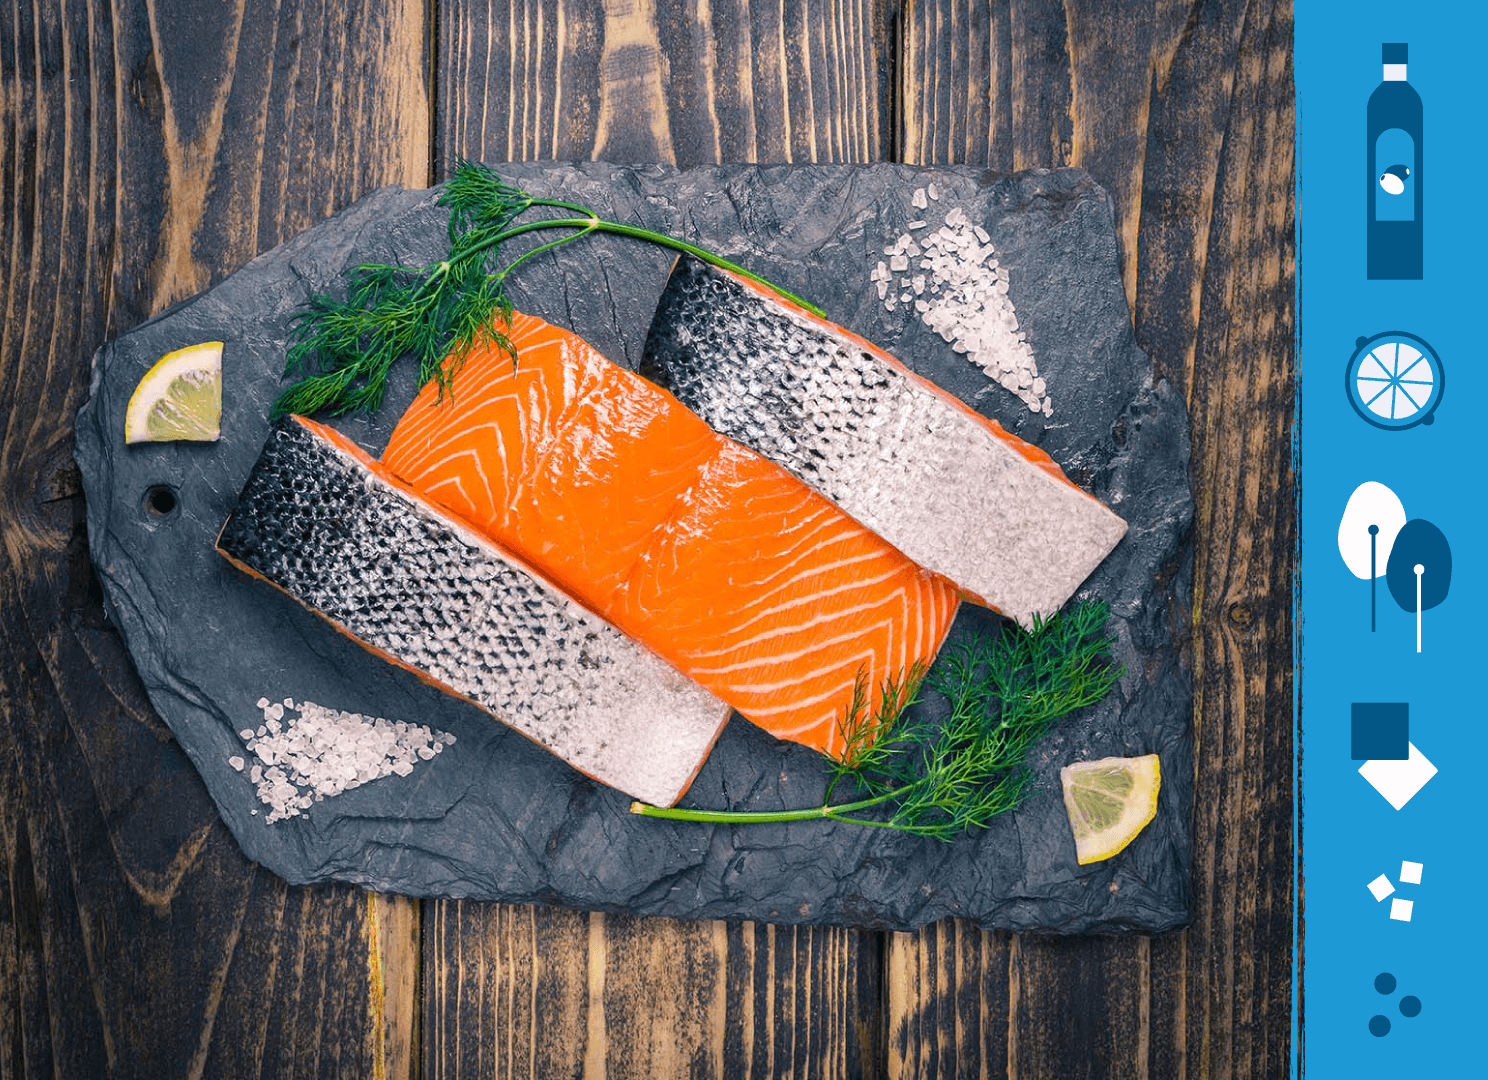 Salmon fillets on a slate background next to illustrations of the ingredients needed to make salmon and spinach